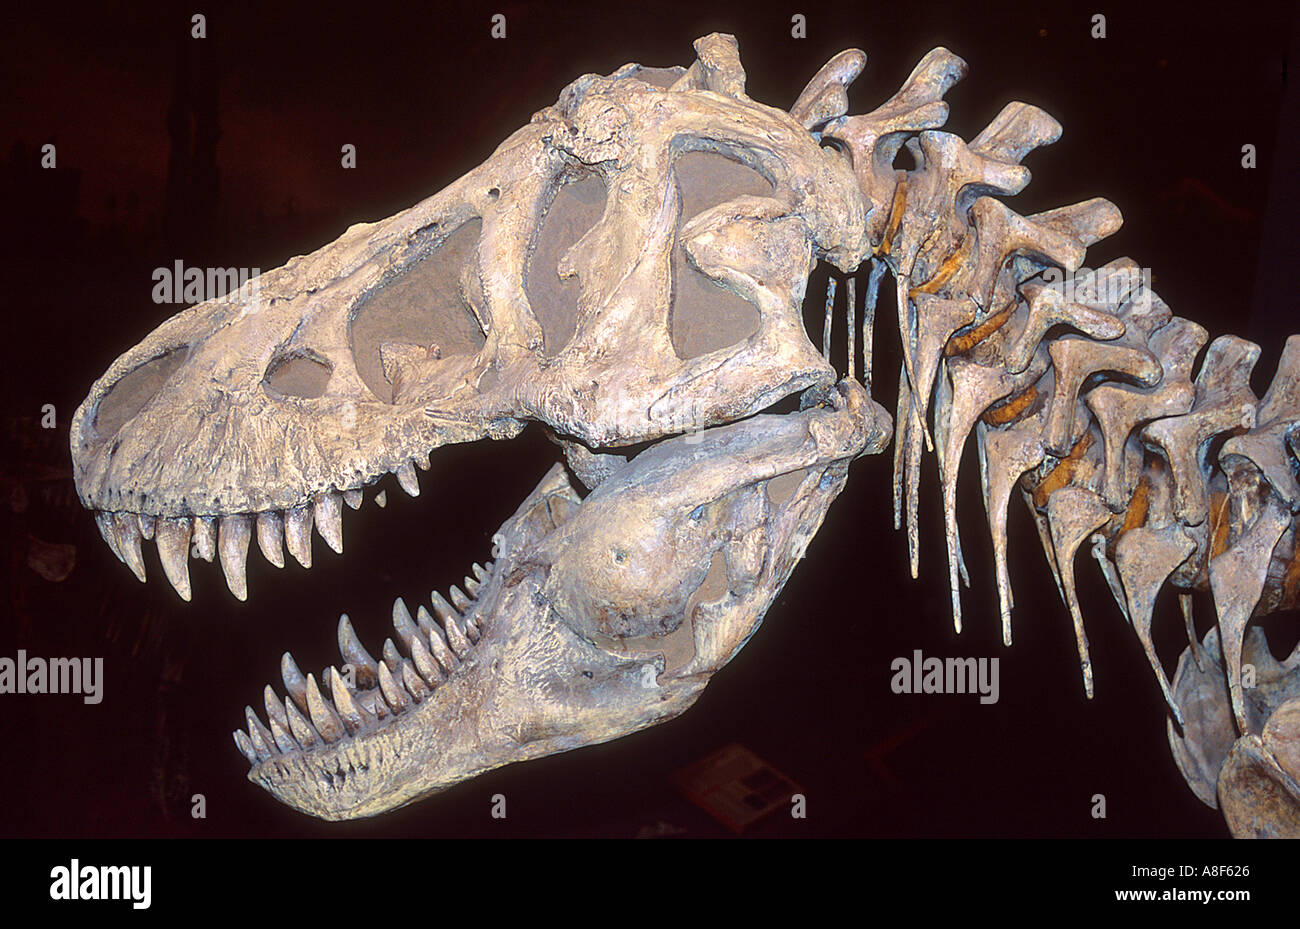 Head of a Tyrannosaurus Rex Dinosaur at the Royal Tyrell Dinosaur Museum near Drumheller Alberta Canada - Stock Image